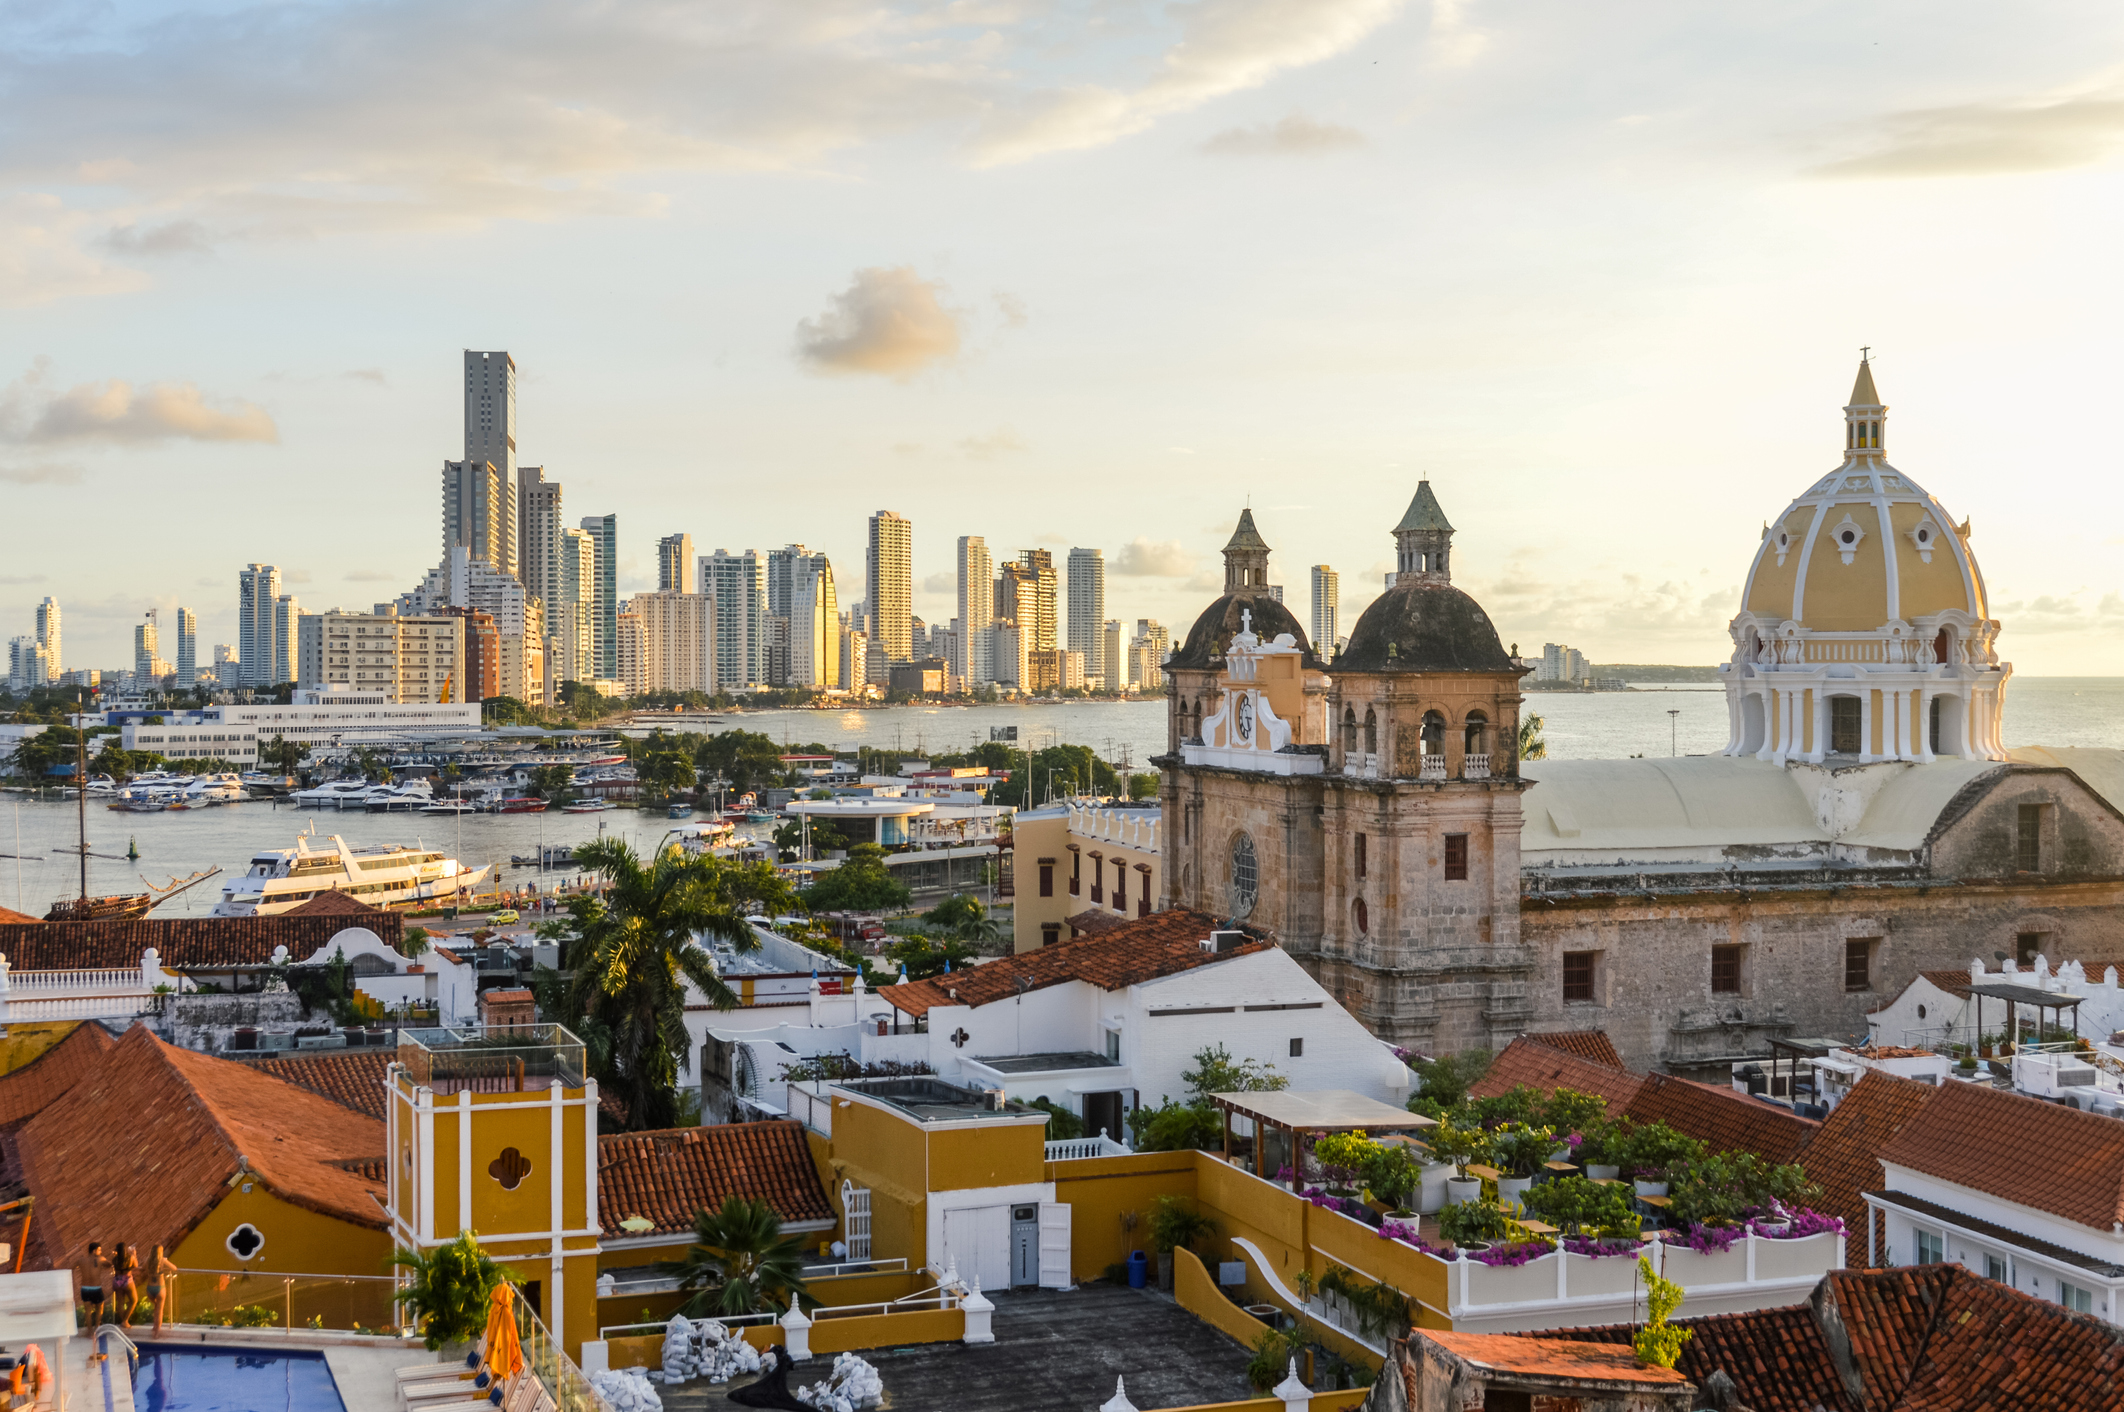 Sunset over Cartagena, Colombia